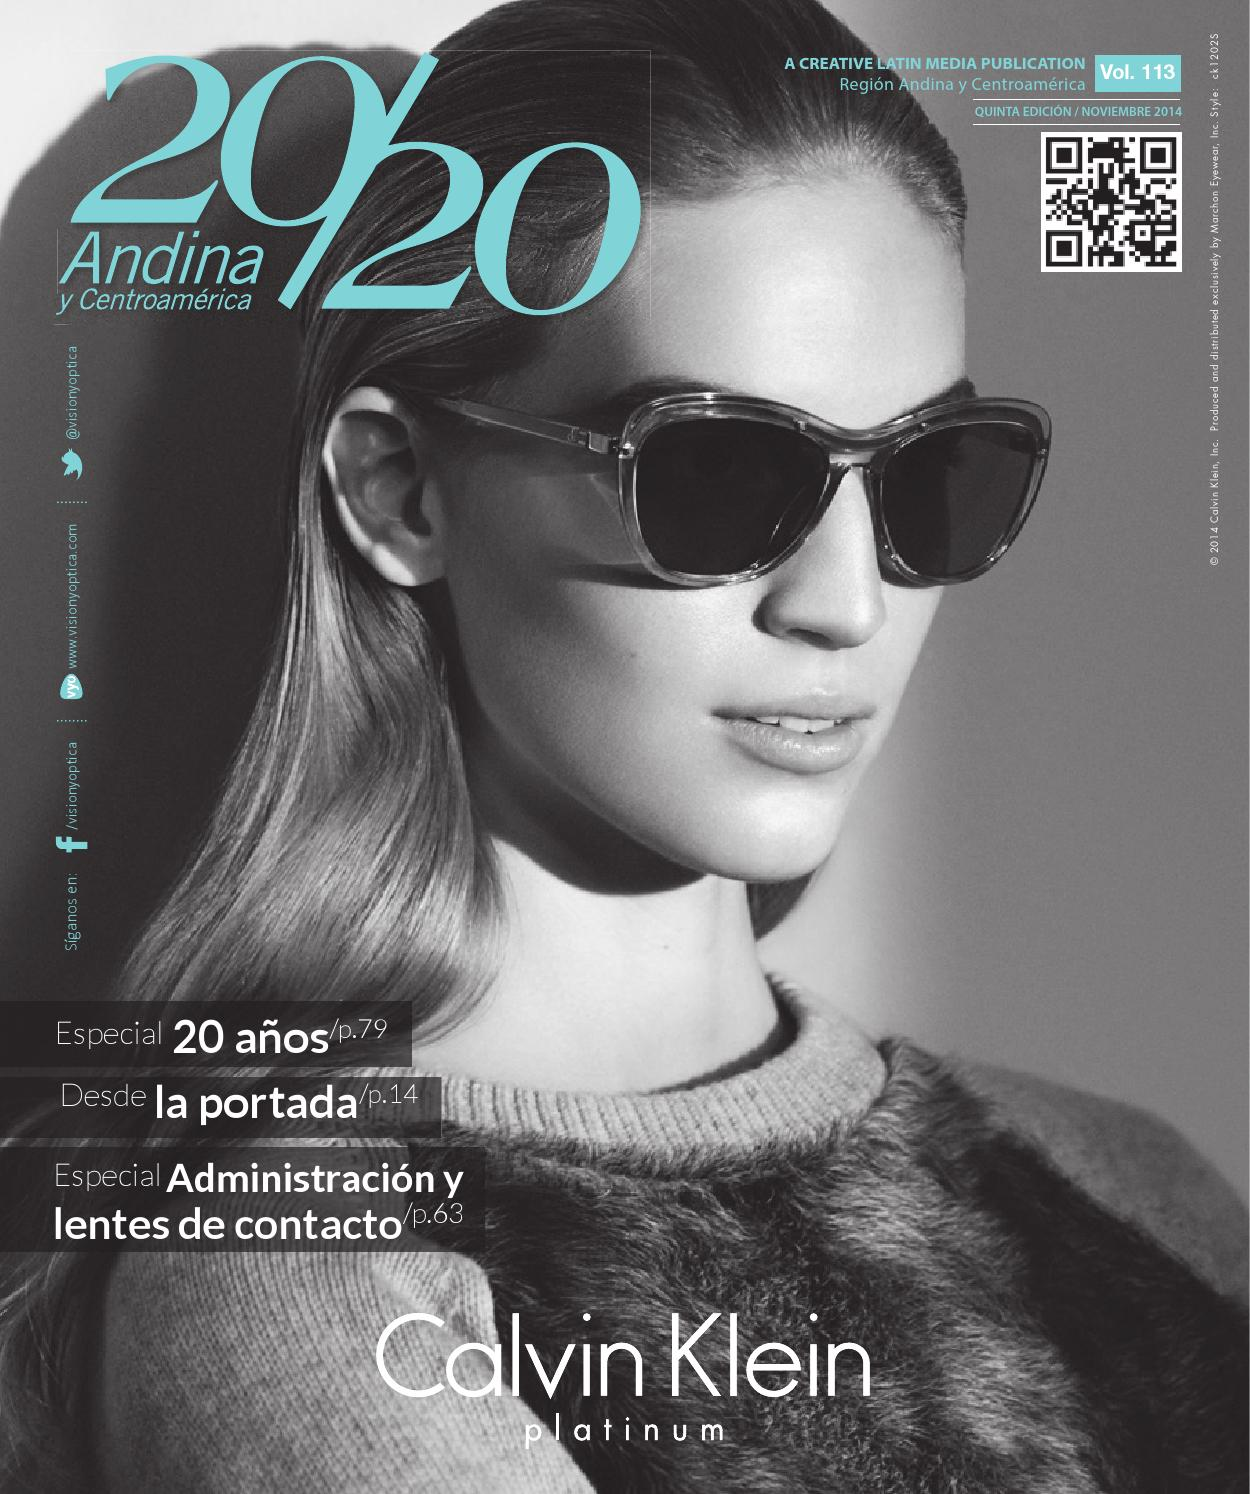 4c4919076d 2020 5ta 2014 Andina by Creative Latin Media LLC - issuu